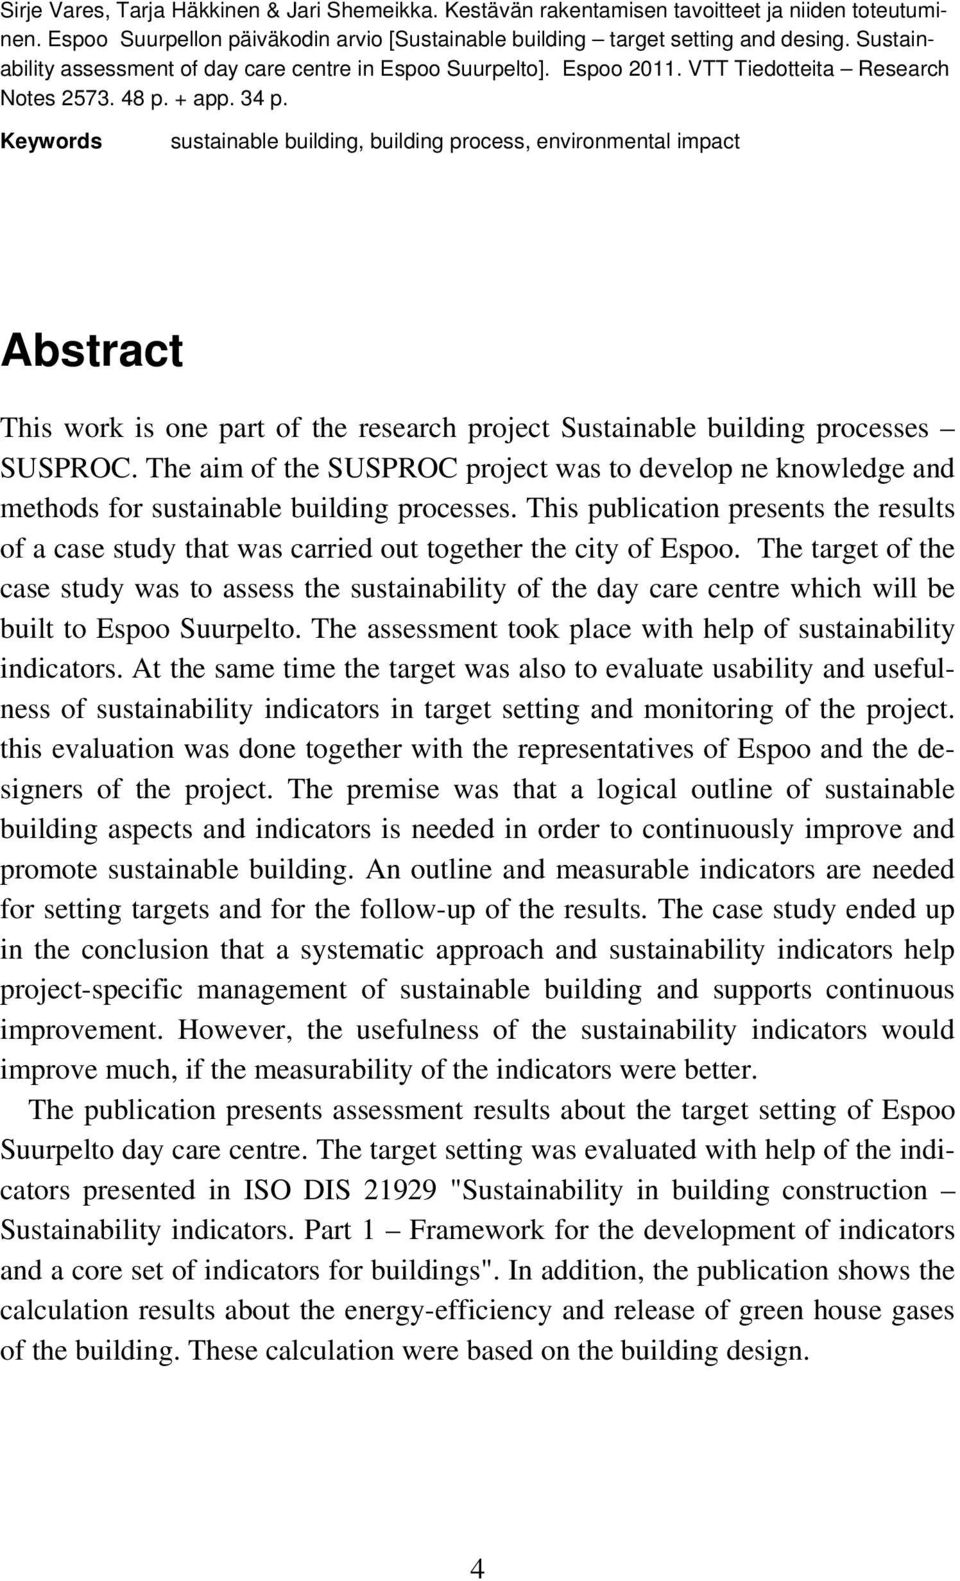 Keywords sustainable building, building process, environmental impact Abstract This work is one part of the research project Sustainable building processes SUSPROC.